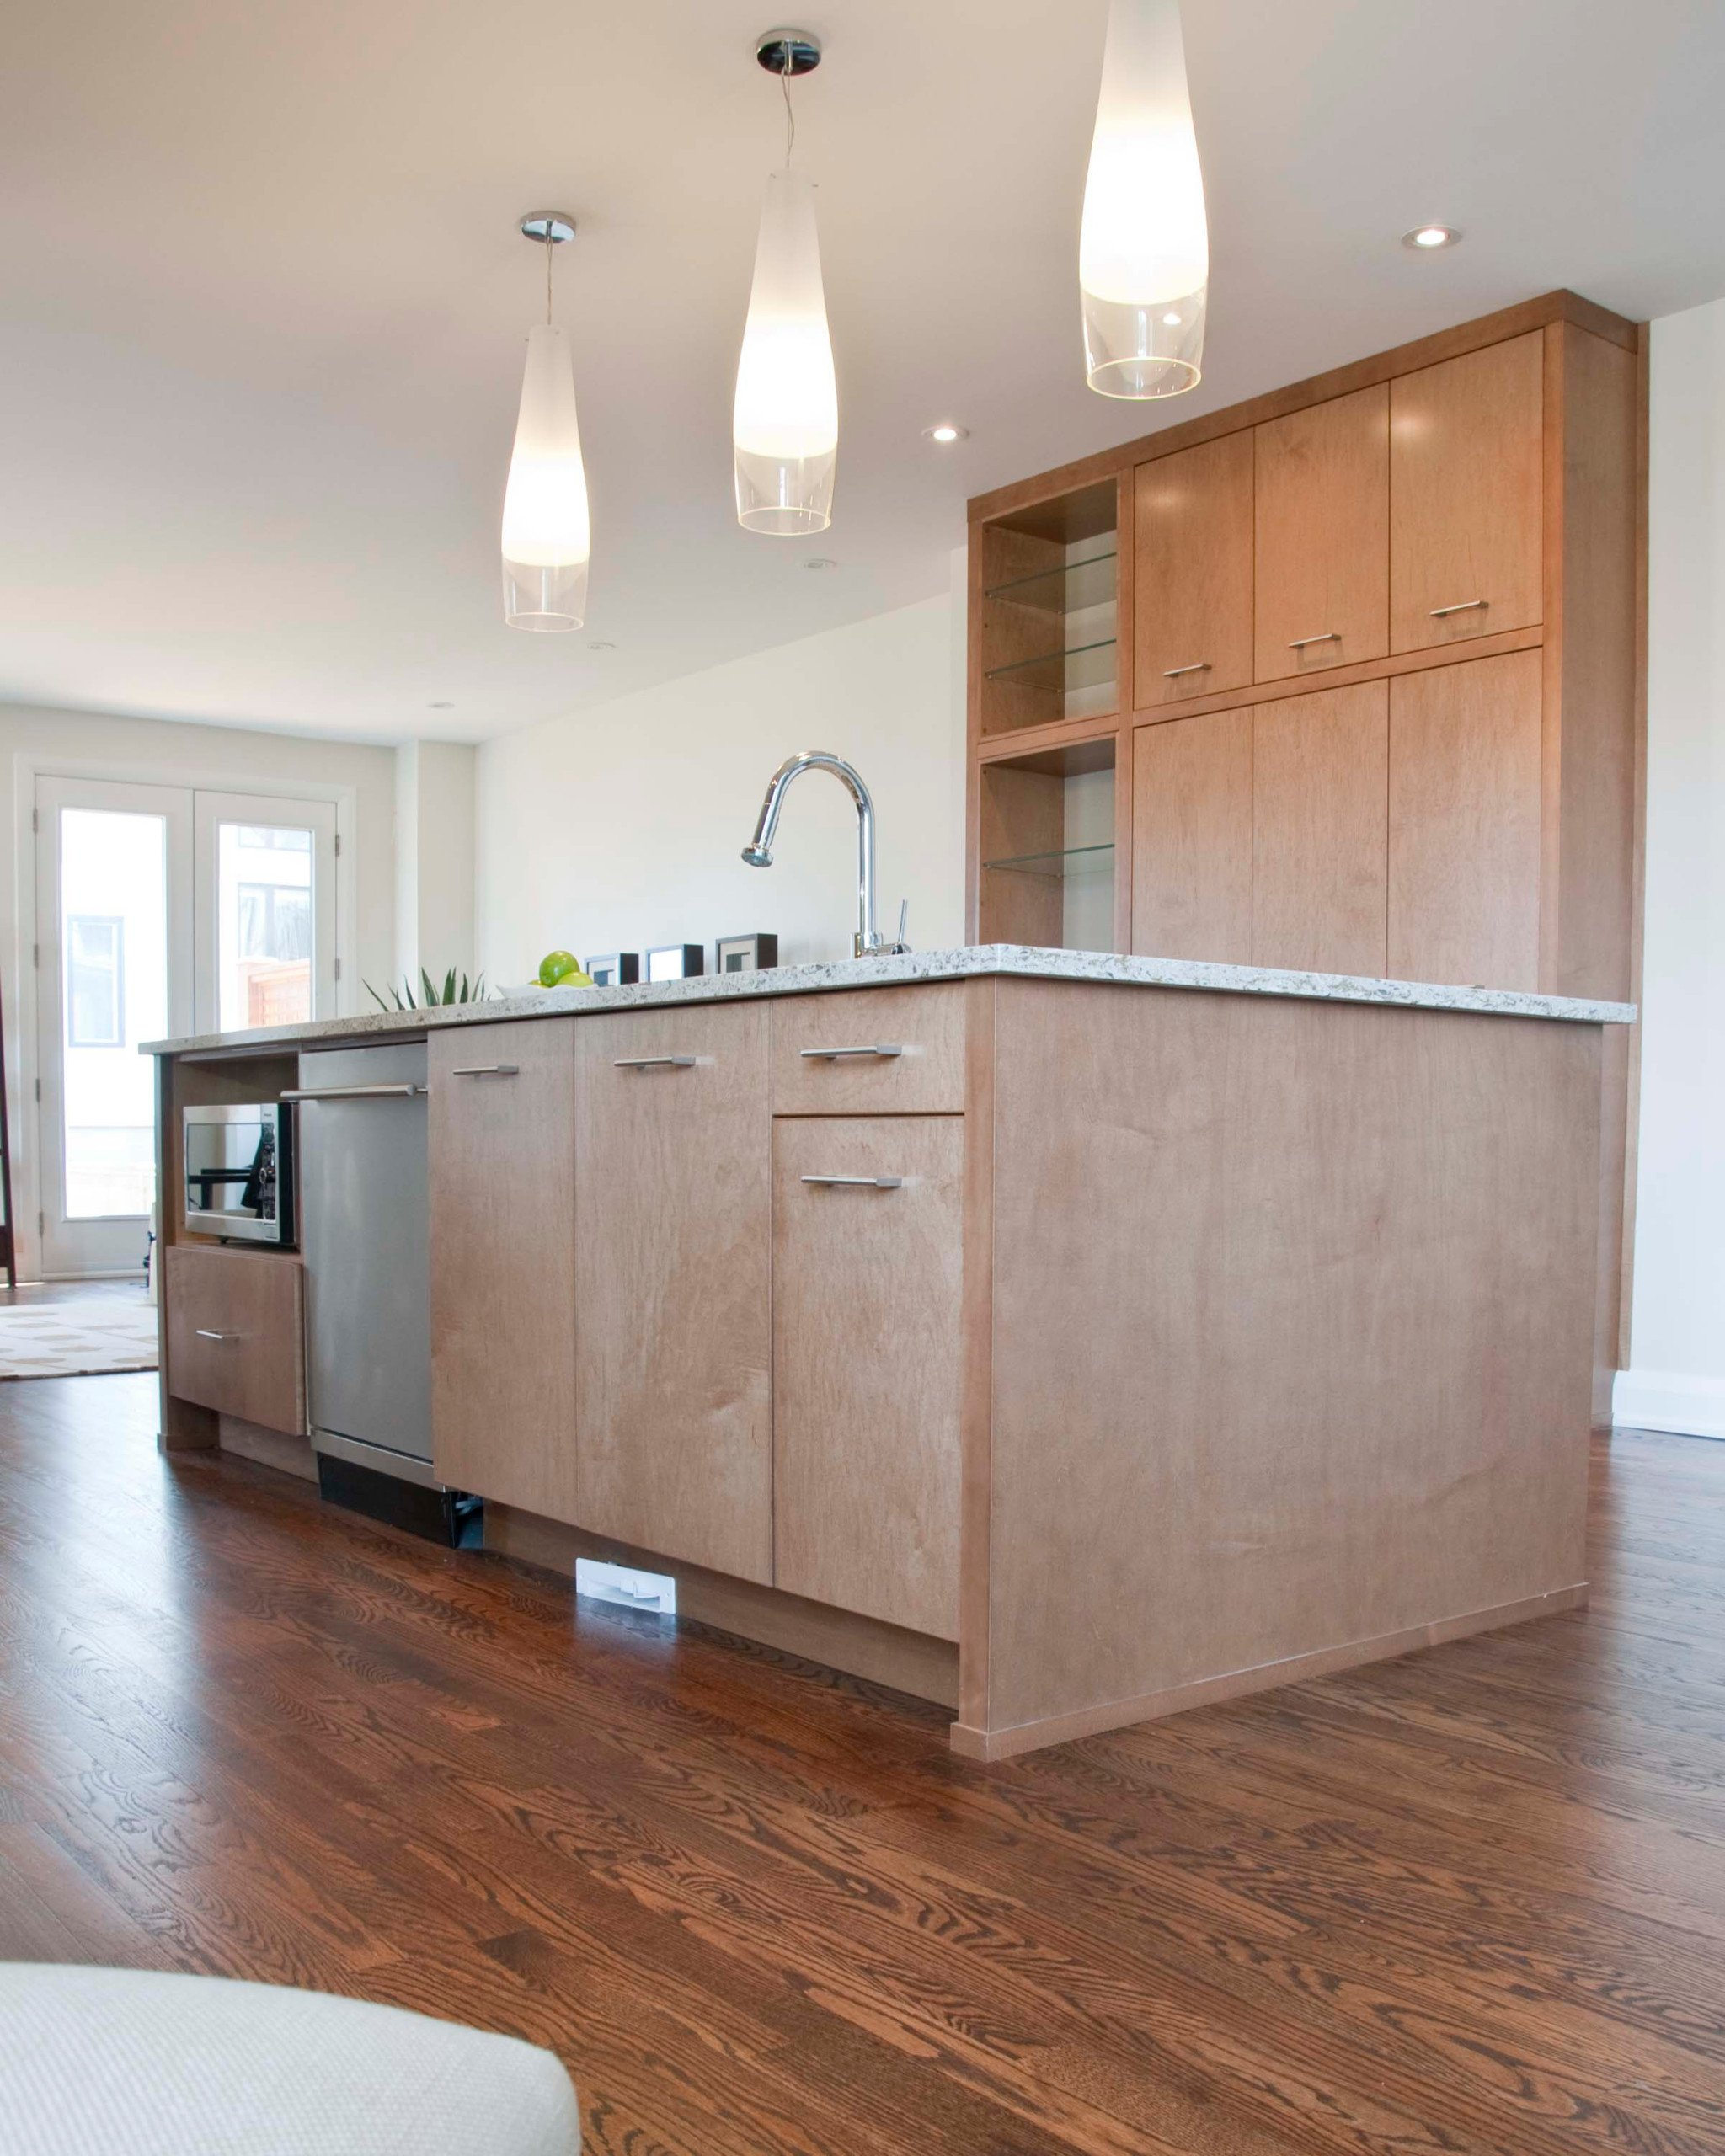 A kitchen island with classy bar pulls